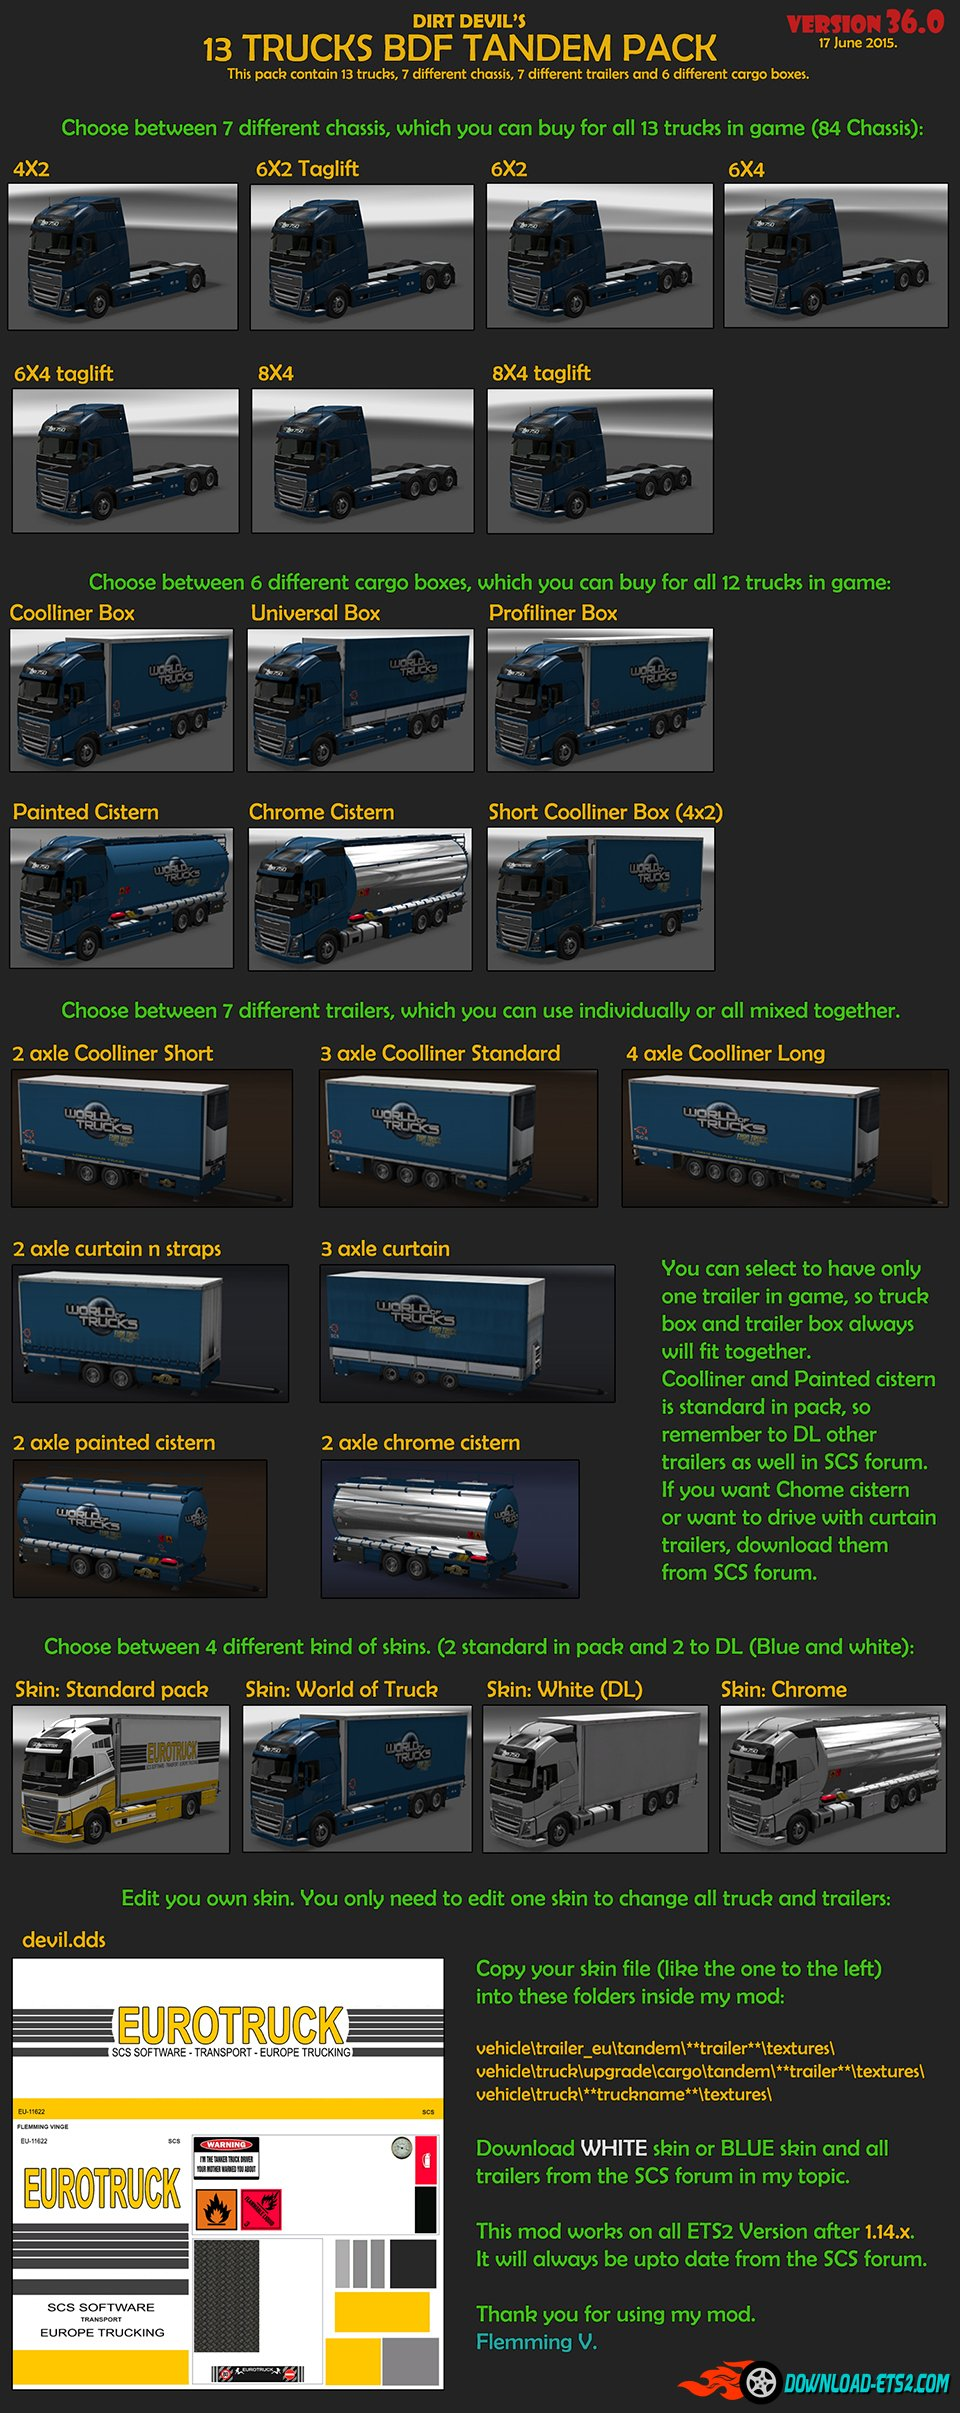 BDF TANDEM TRUCK PACK(updated) V36.0